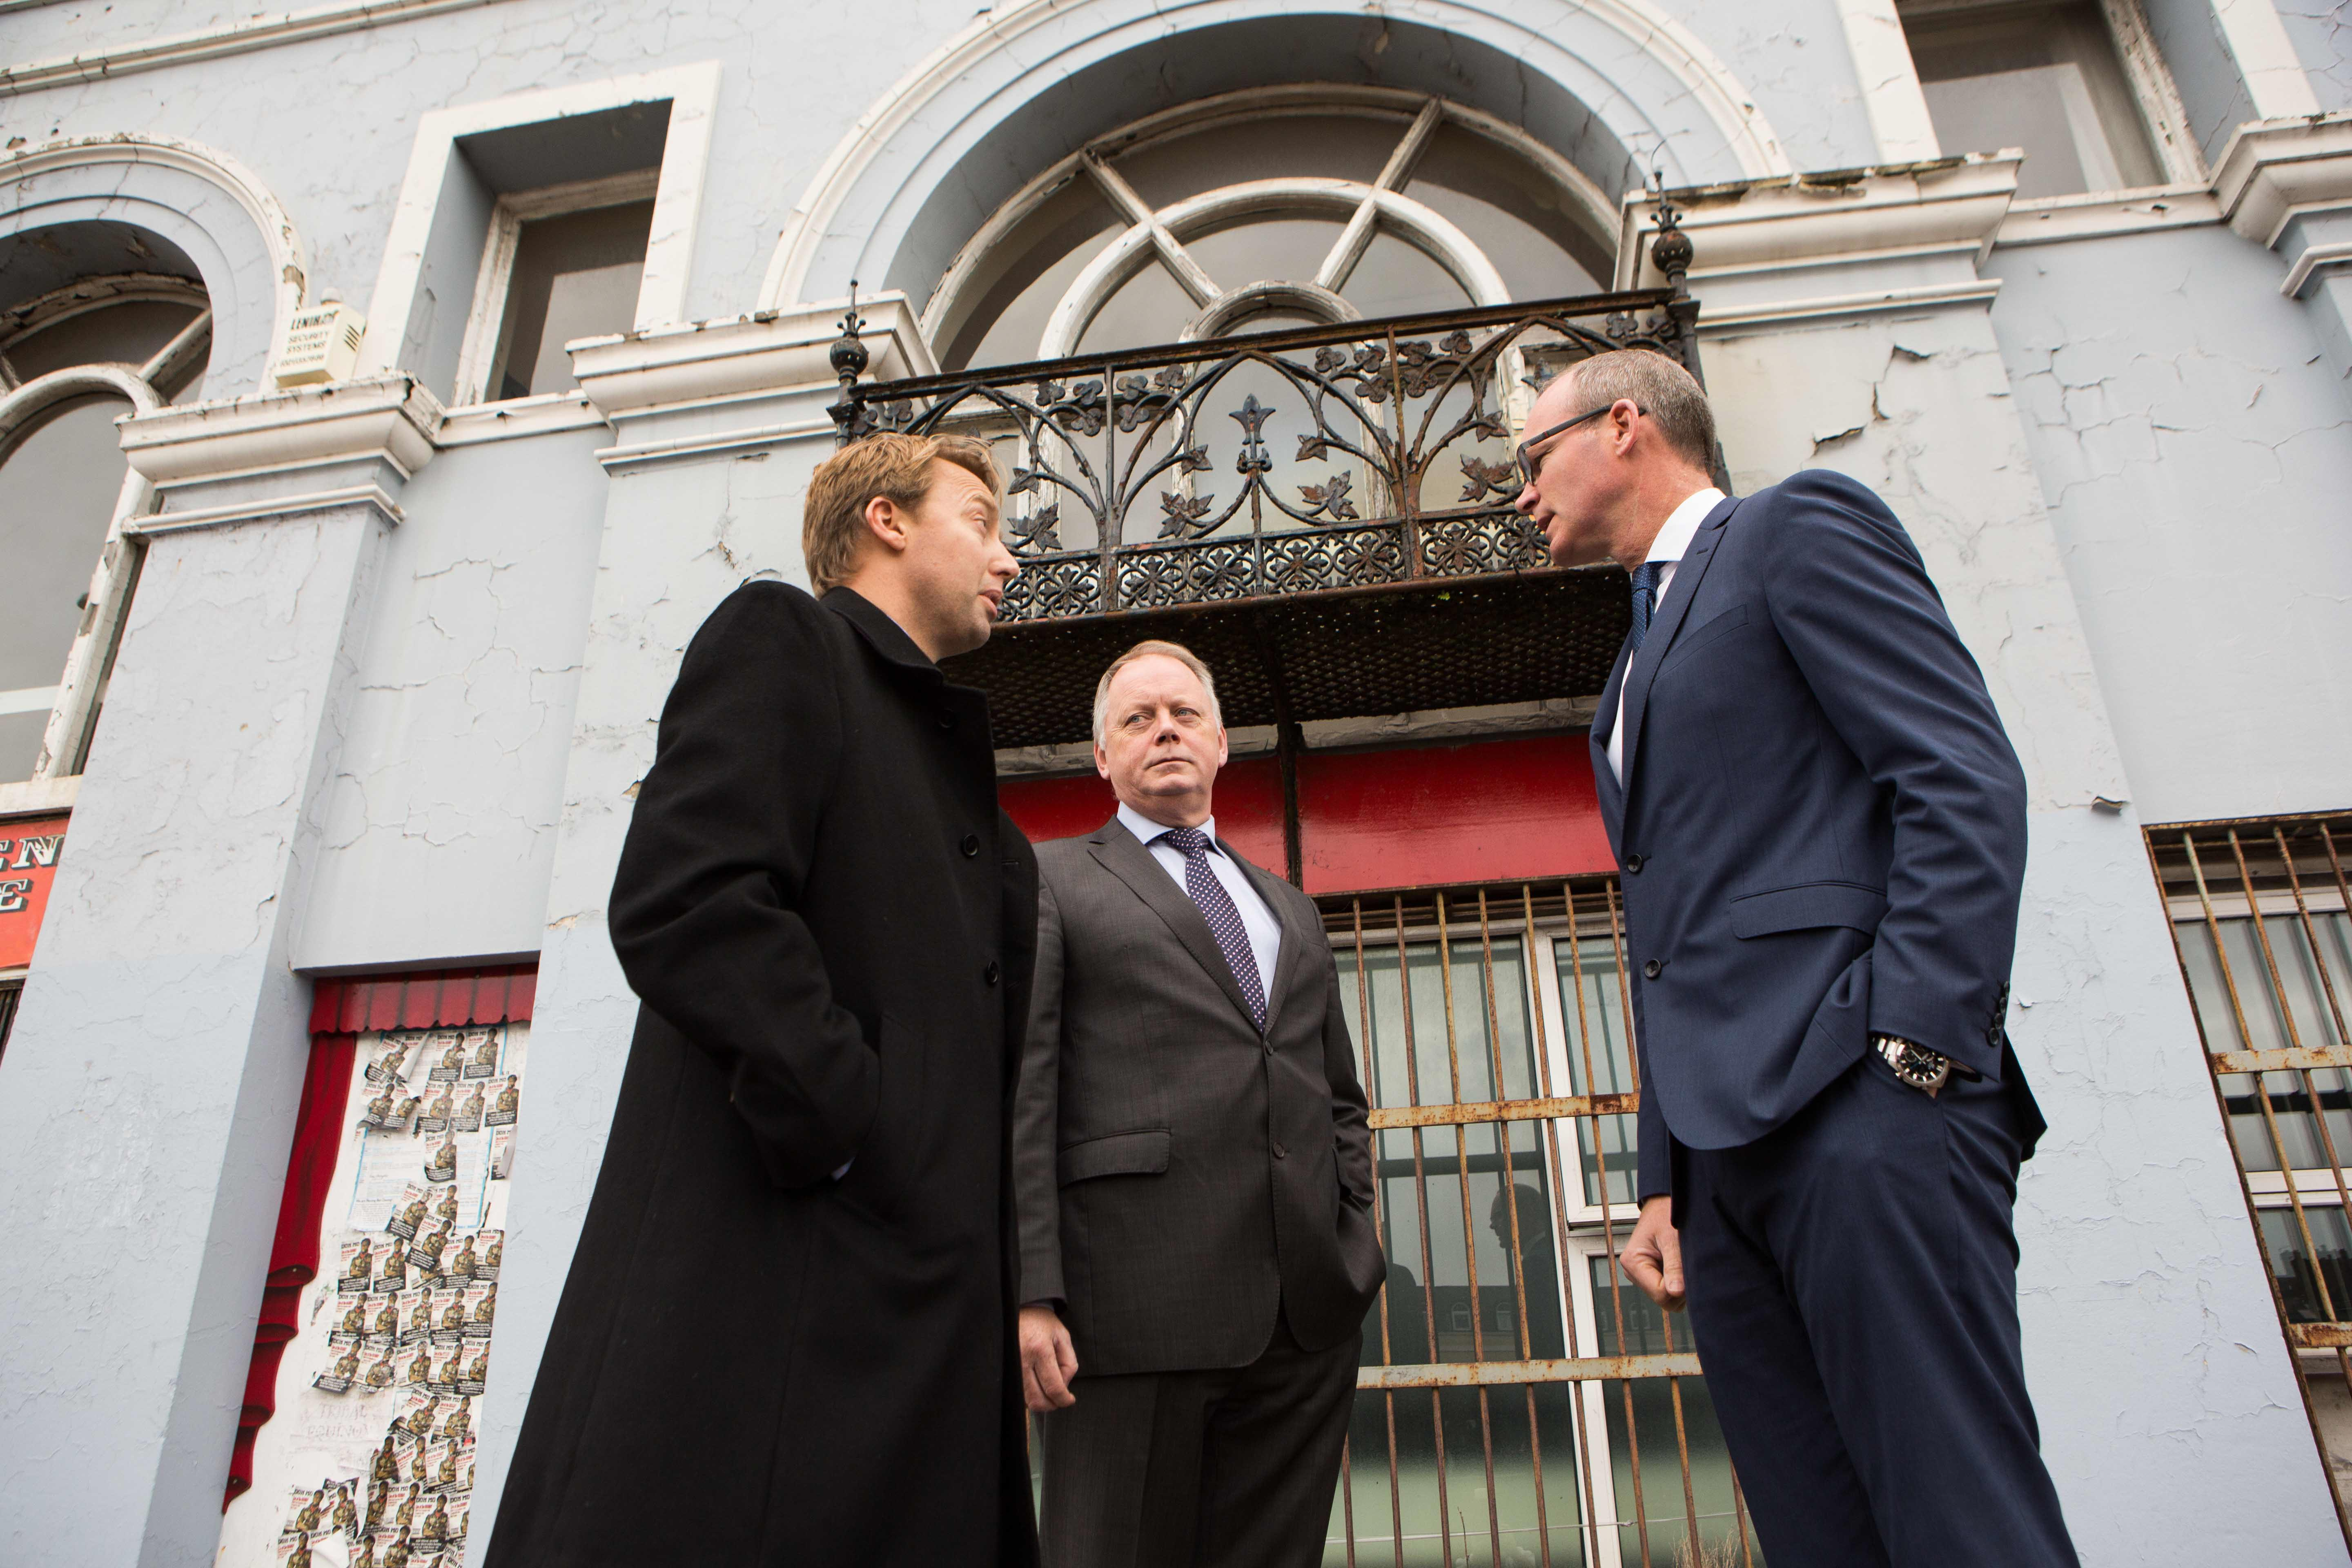 Mac Curtain Street rebranded by local businesses as Cork's 'Victorian Quarter'